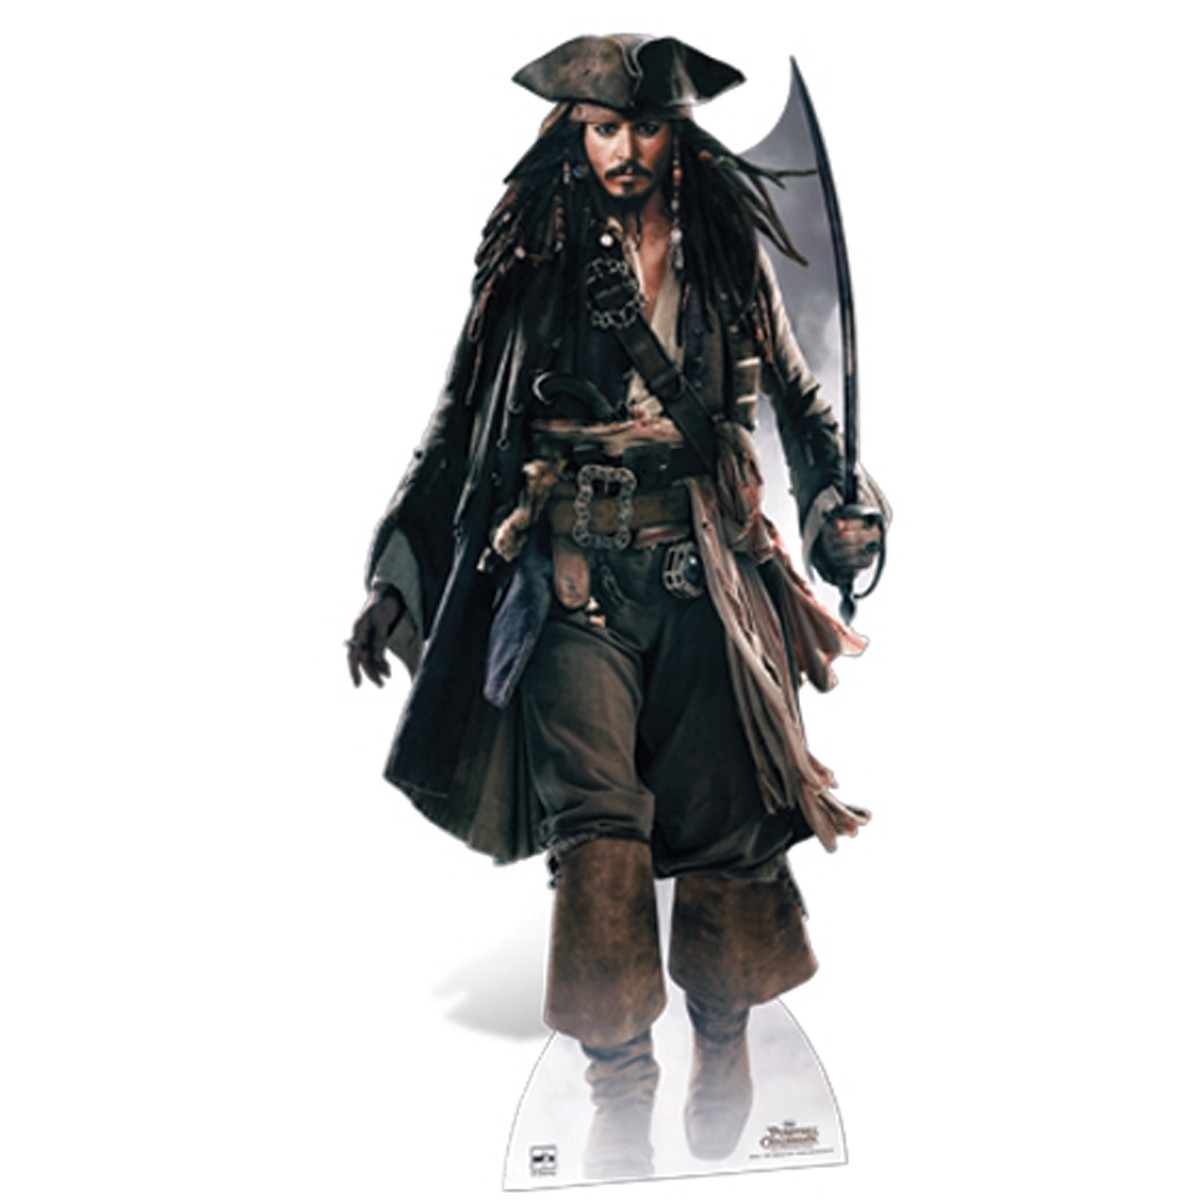 Figurine en carton Captain Jack Sparrow Disney